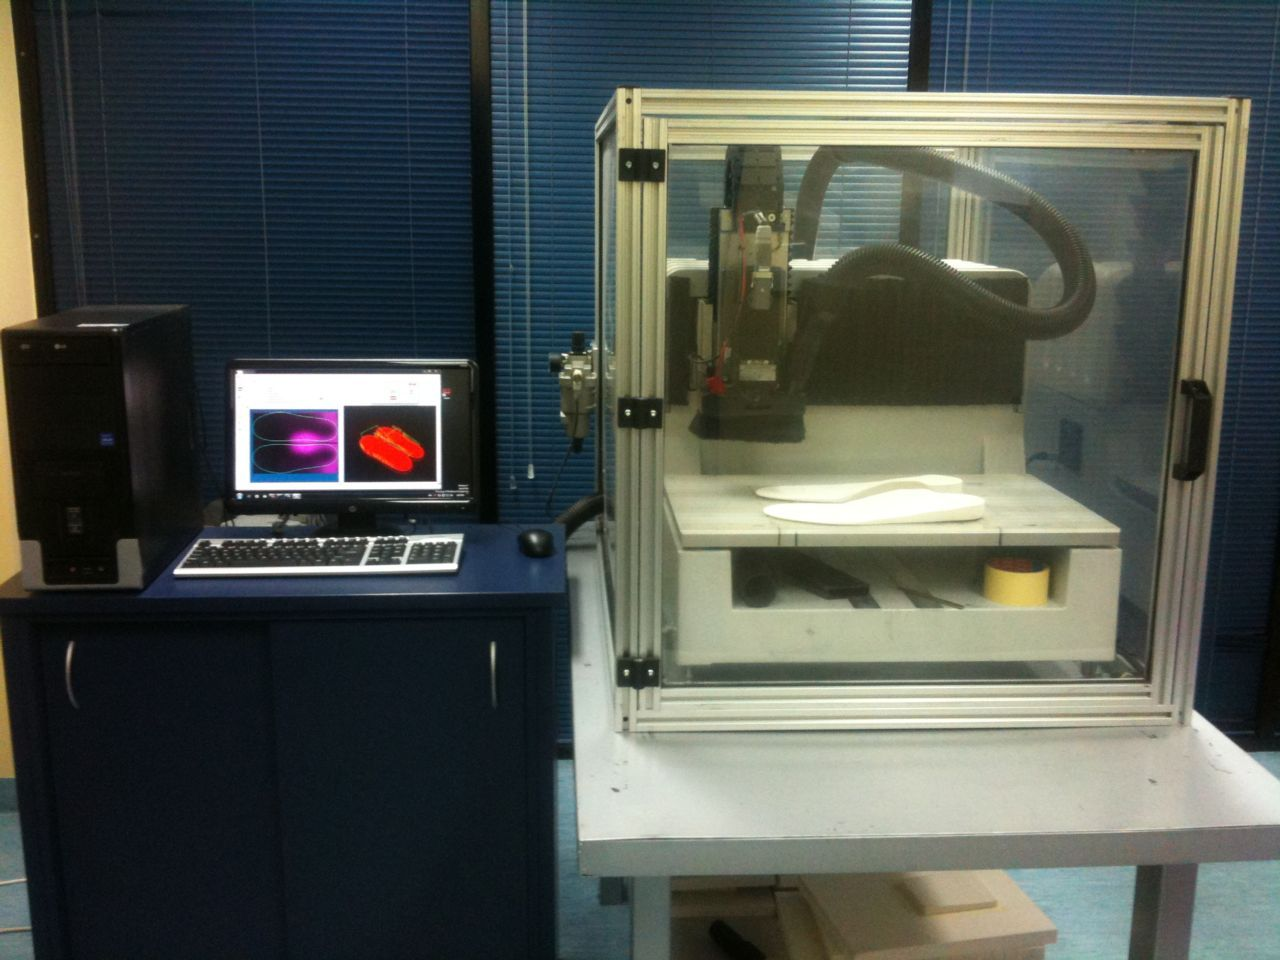 Having an onsite milling machine means we can design make